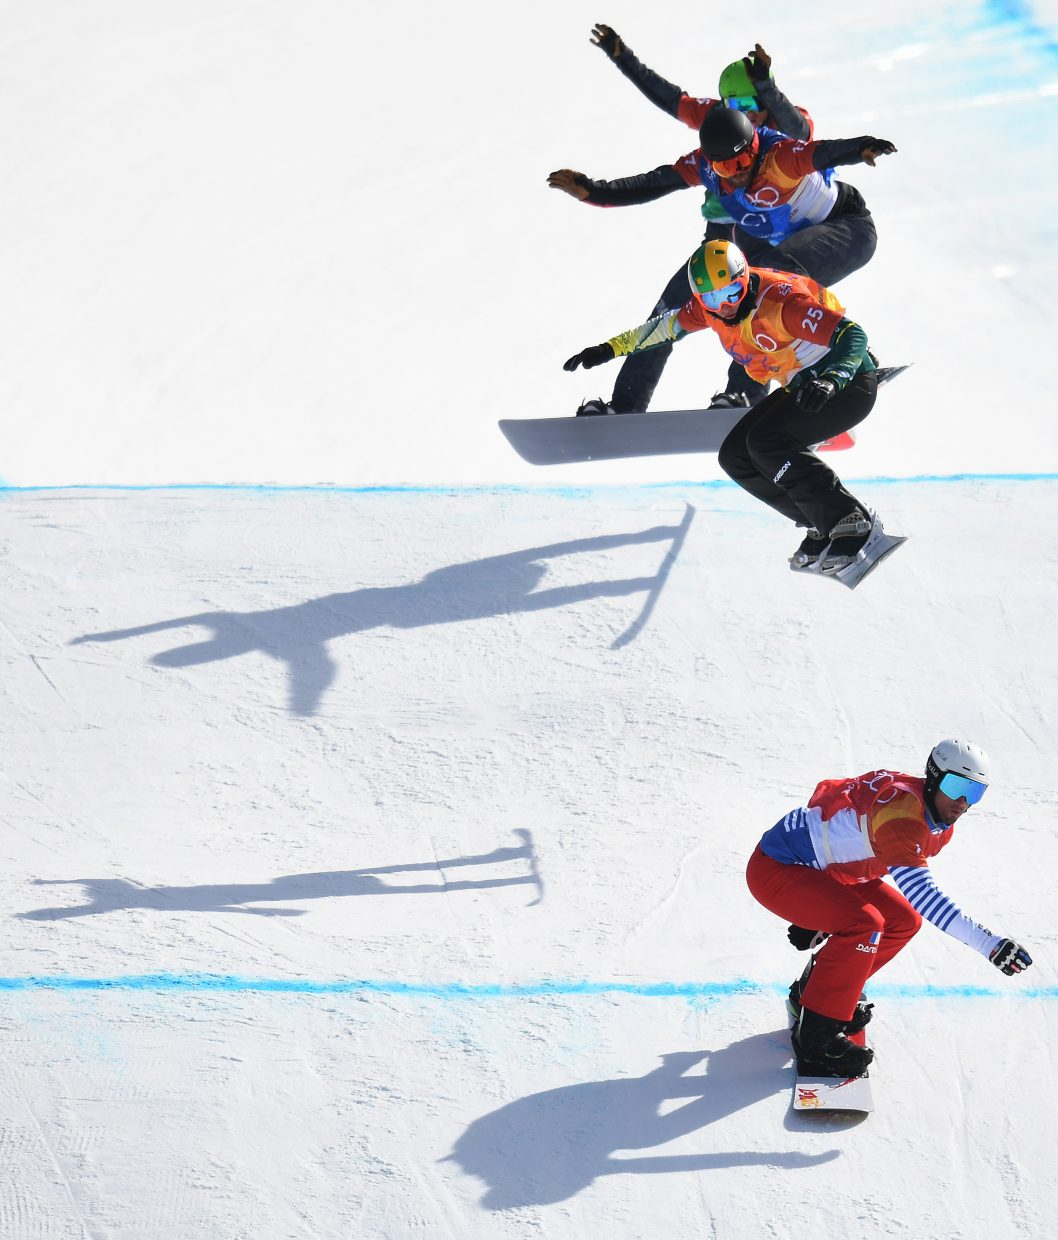 Snowboard cross is an awesome event to shoot. I love the symmetry of the racers coming over the jump.